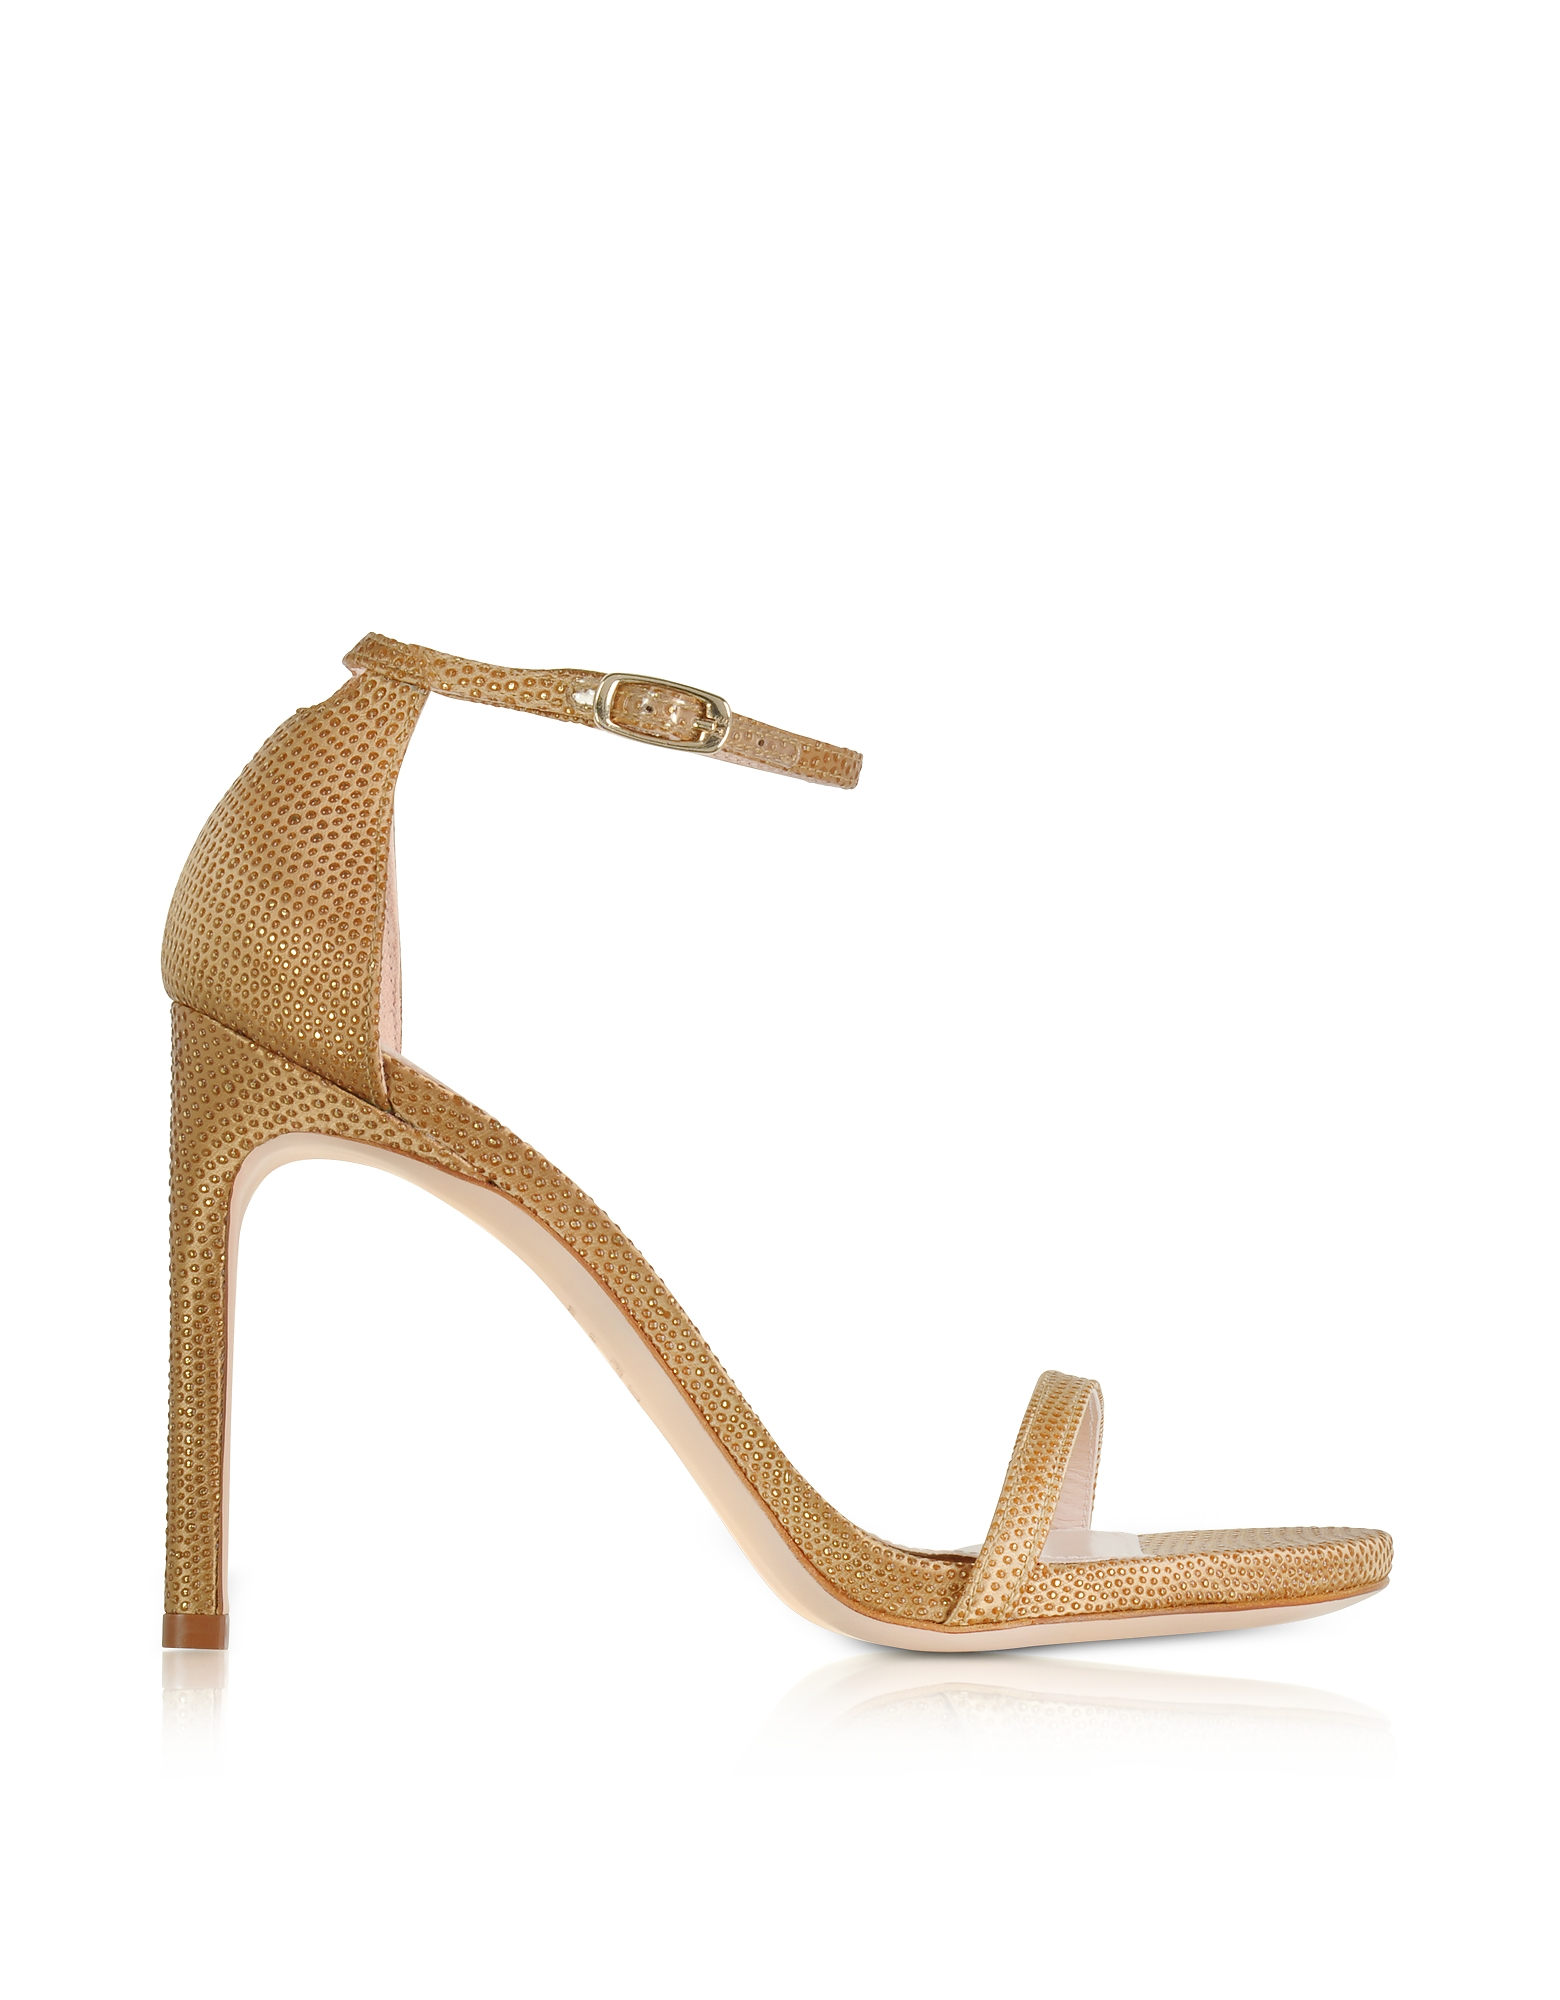 Stuart Weitzman Shoes, Nudistsong Gold Crystaline High Heel Sandals